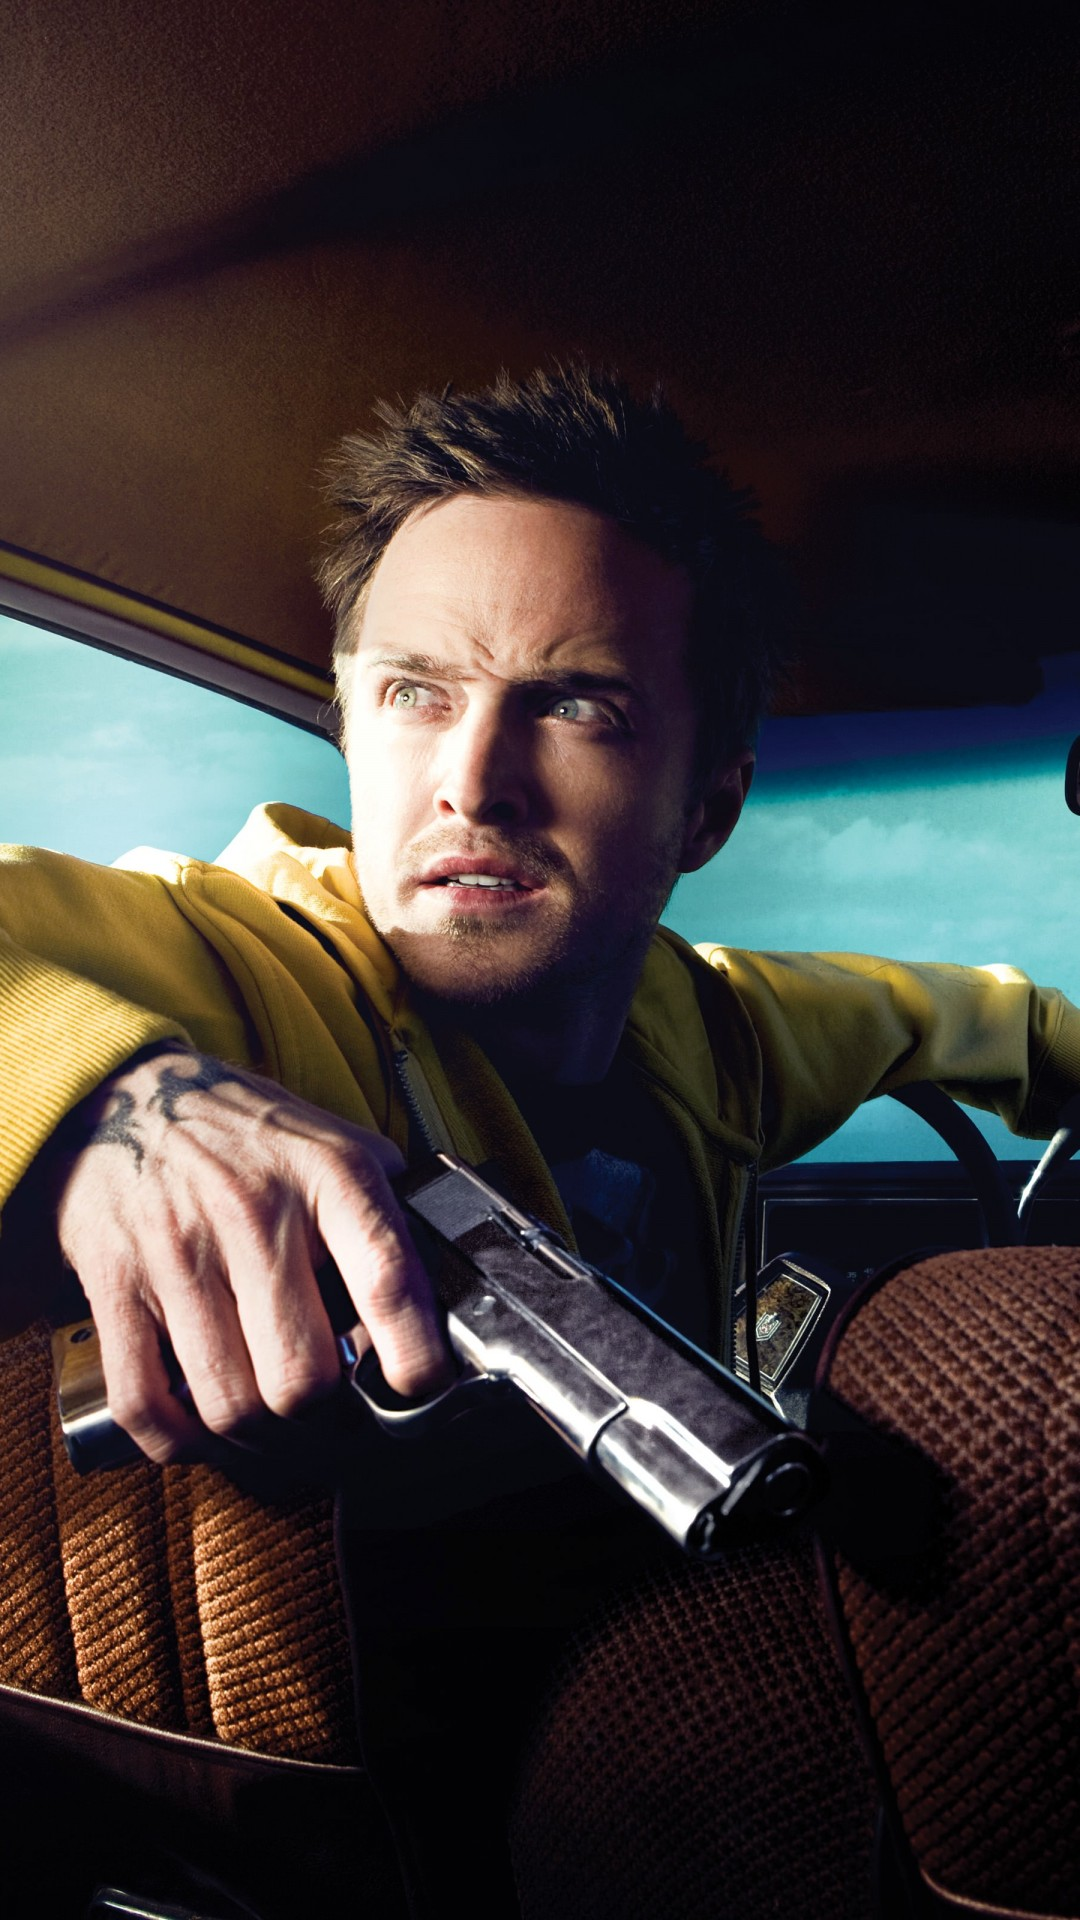 Breaking Bad - Jesse Pinkman & Walter White Wallpaper for Motorola Moto X